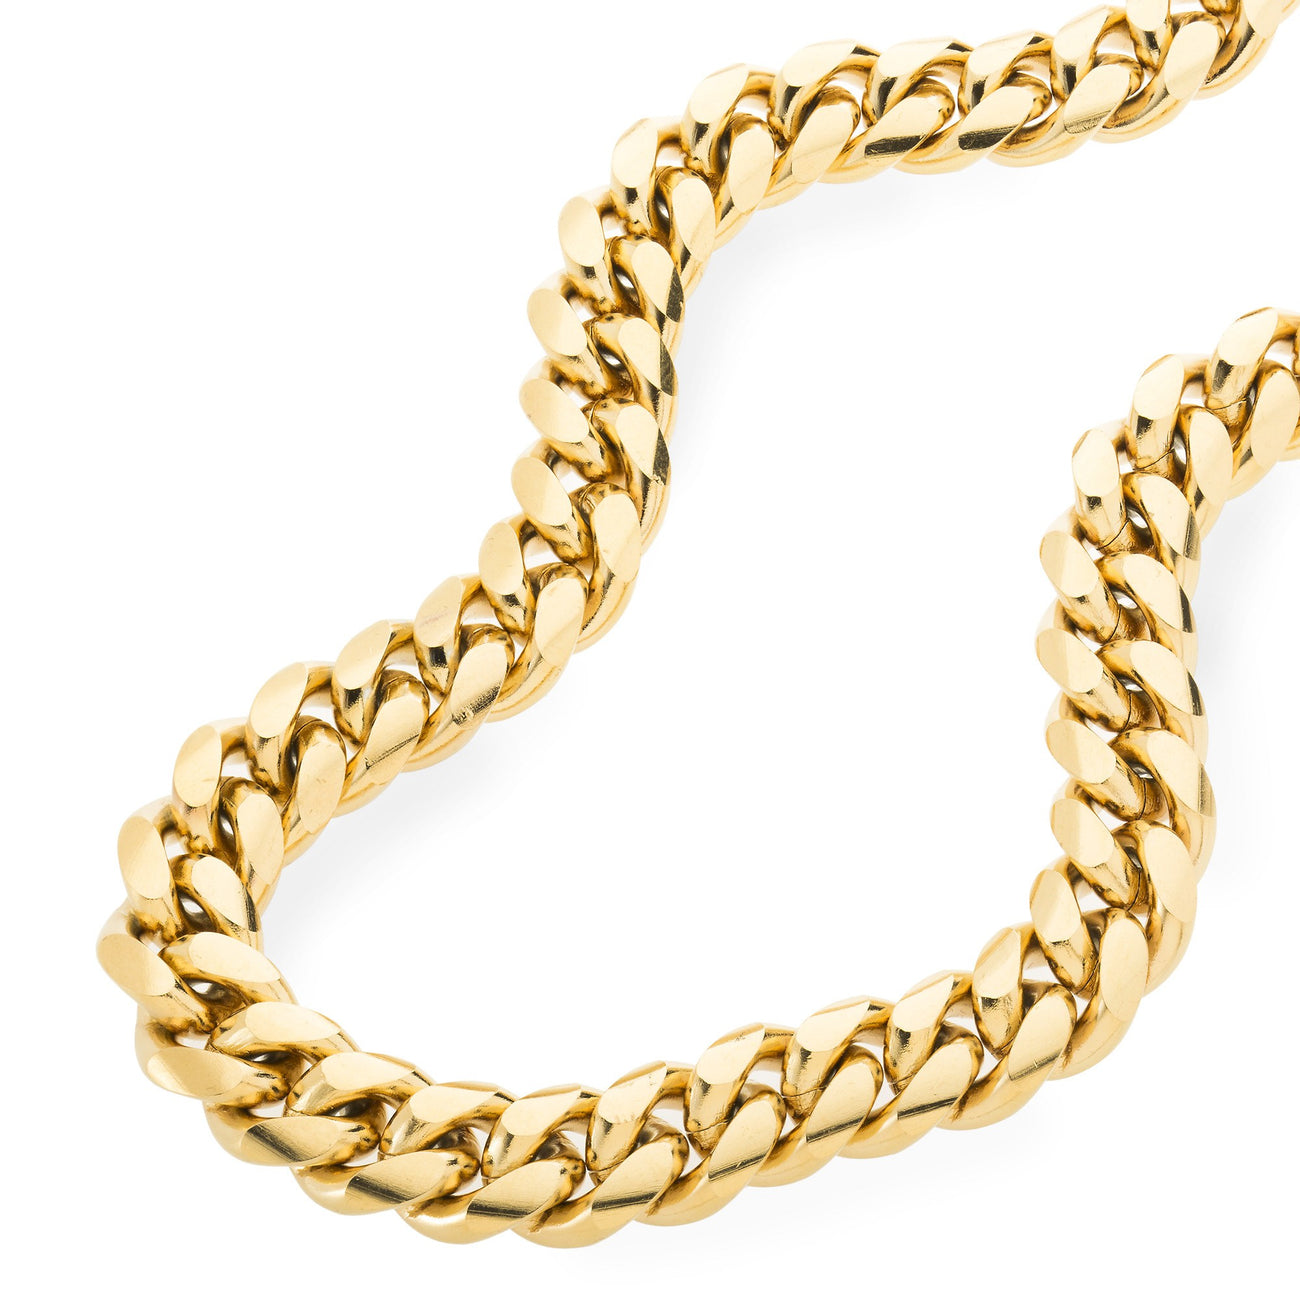 Heavy 12mm Miami Cuban Link Chain , Chains, SpicyIce - 3